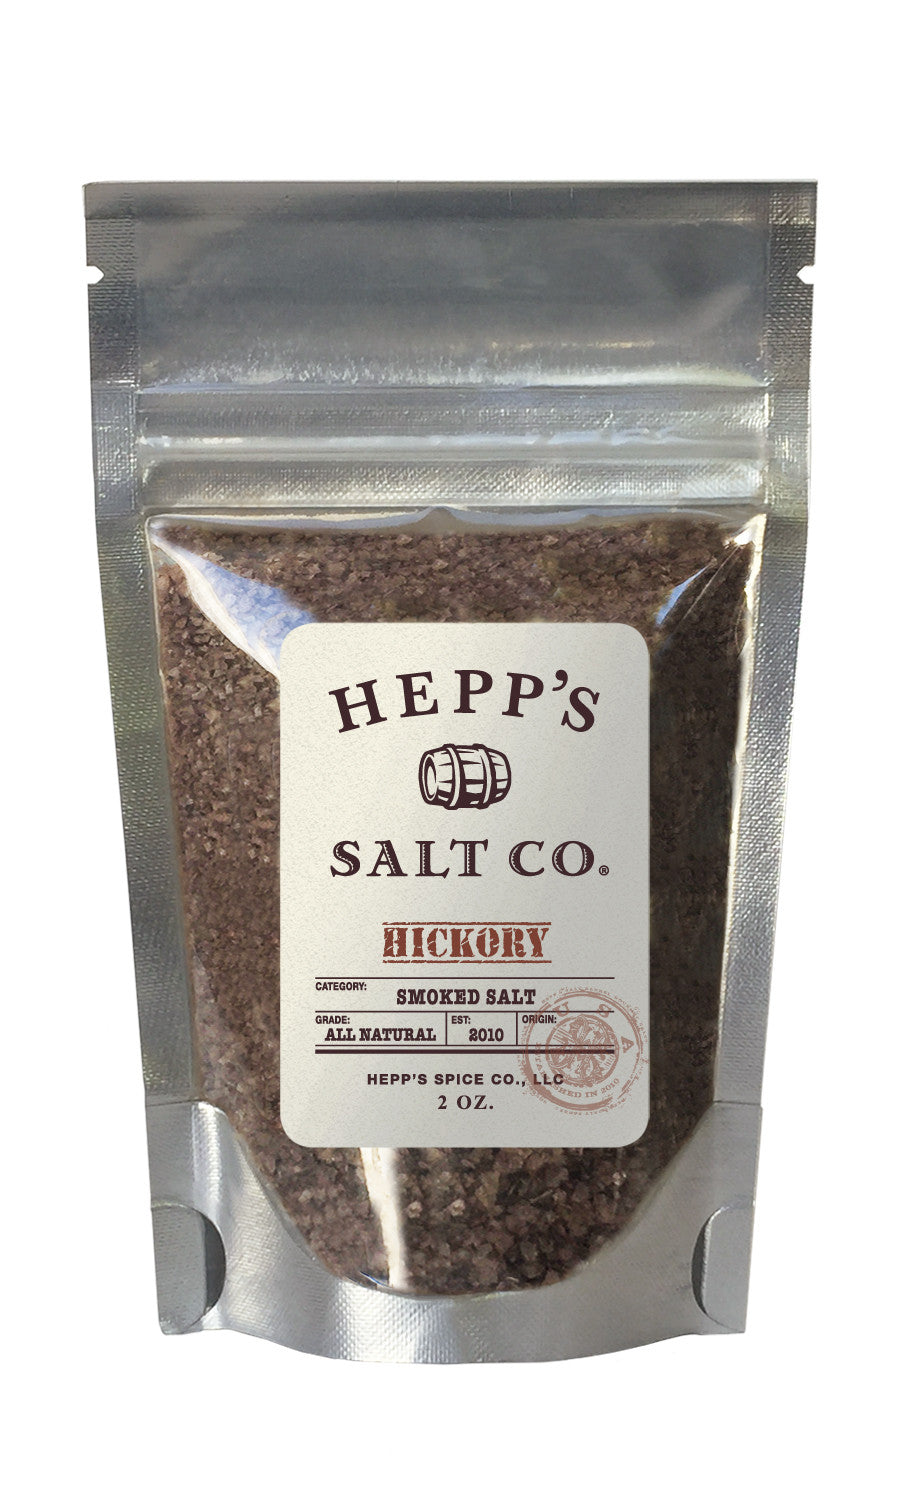 Hickory Smoked Sea Salt - HEPPS SALT CO.